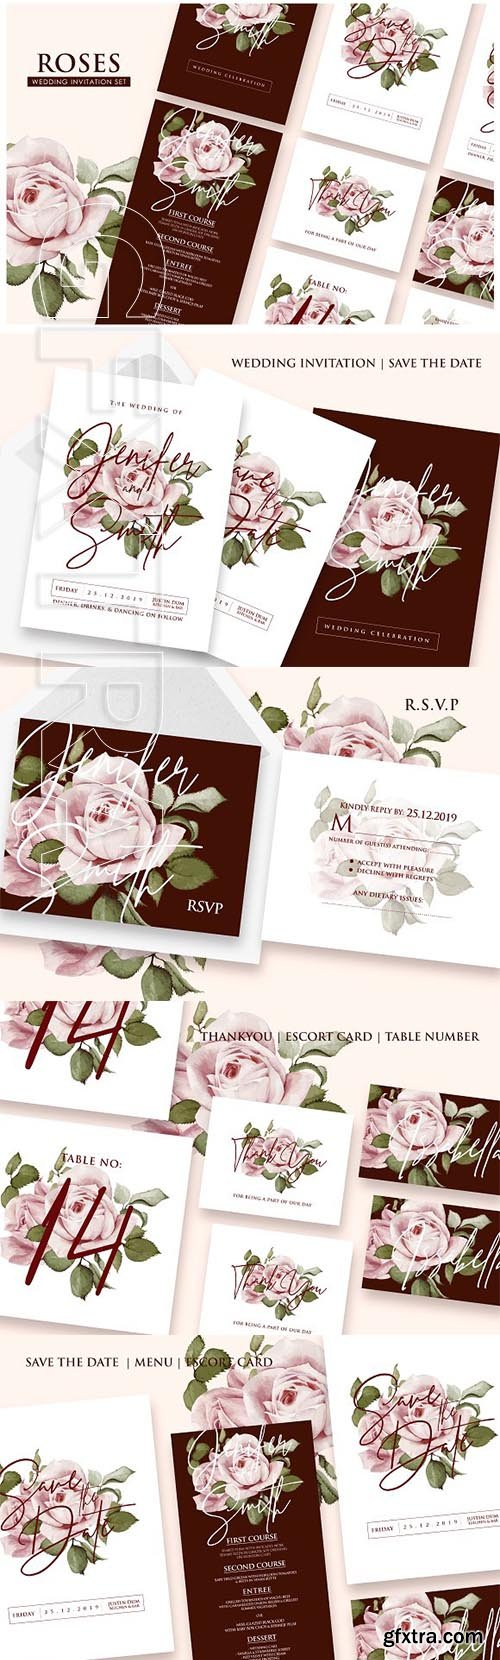 Roses - Wedding Invitation Ac23